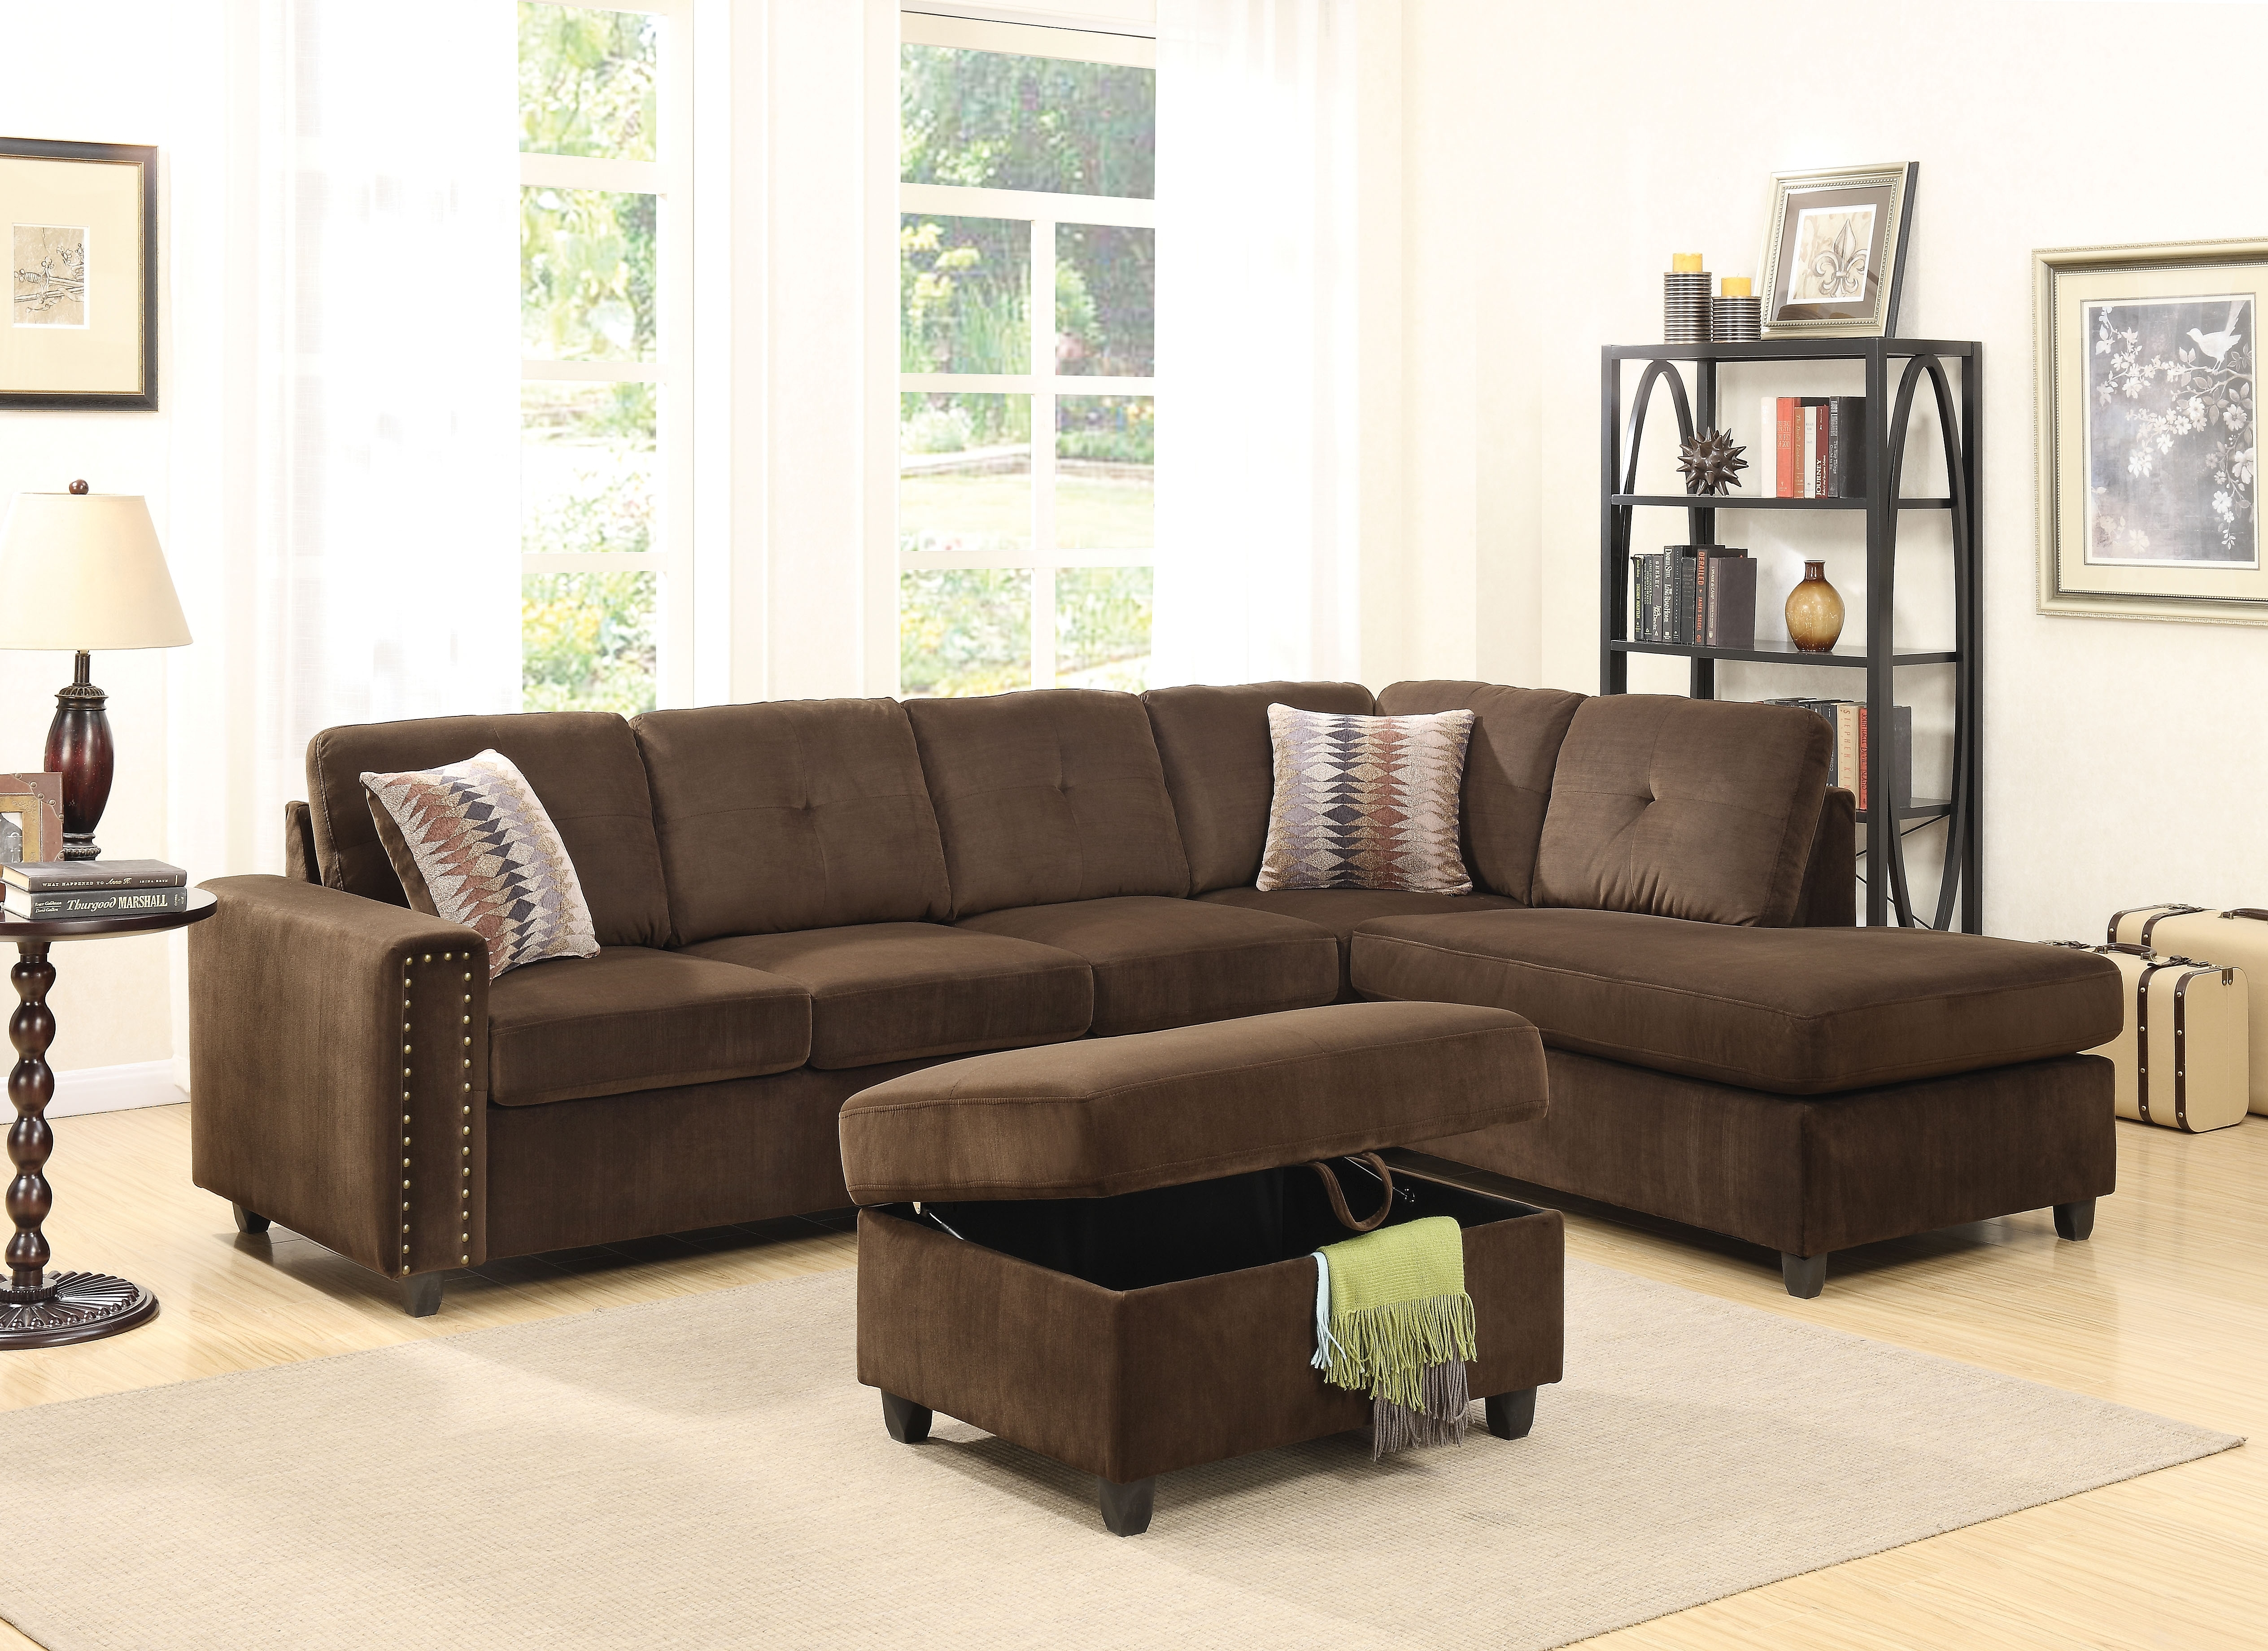 Acme Belville Reversible Sectional Sofa With 2 Pillows, Chocolate With Chocolate Sectional Sofas (Image 2 of 10)